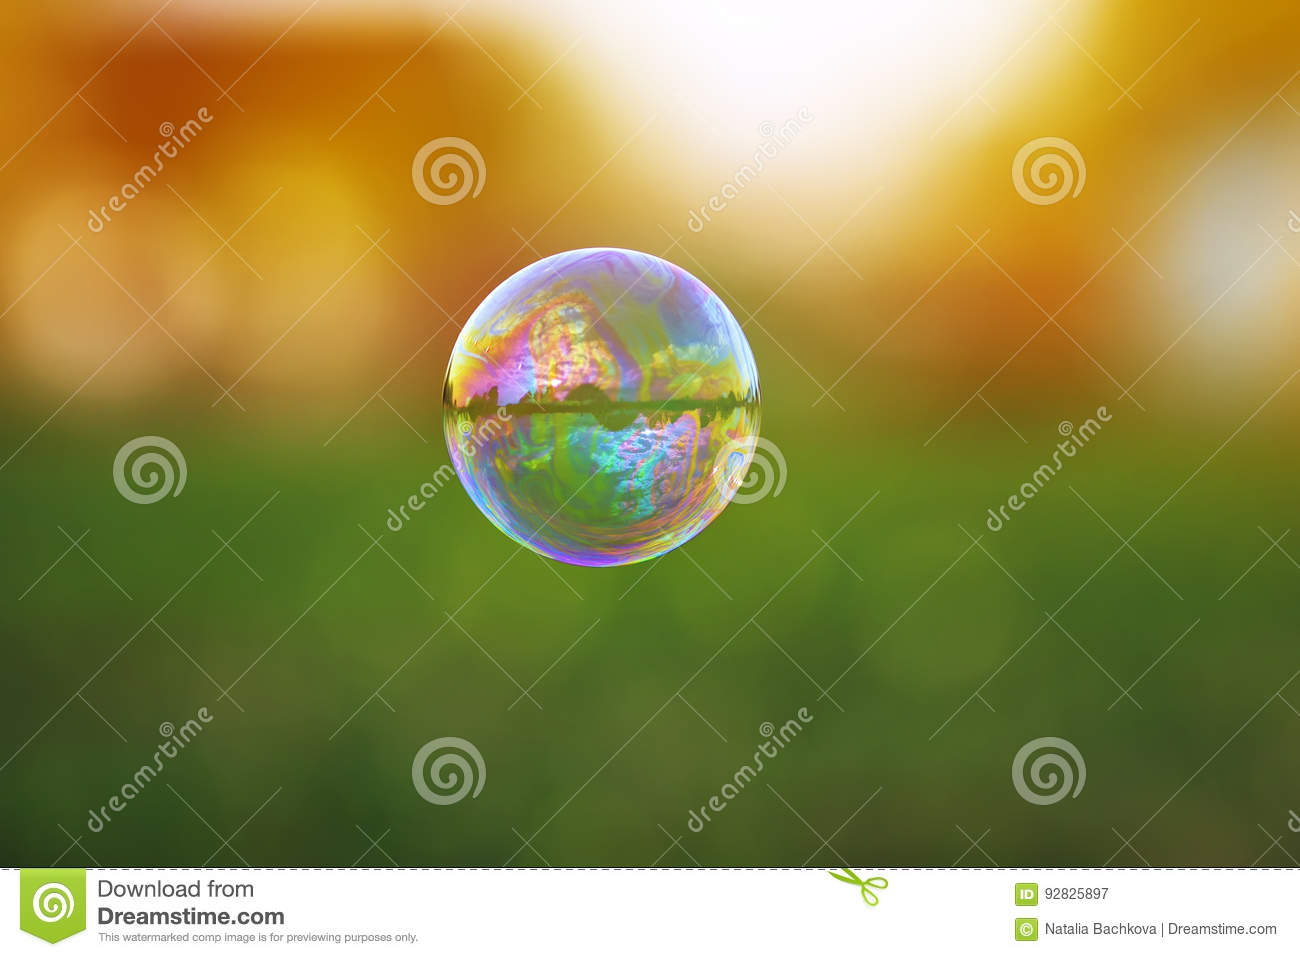 transparent soap bubble with a shimmering flying over a S